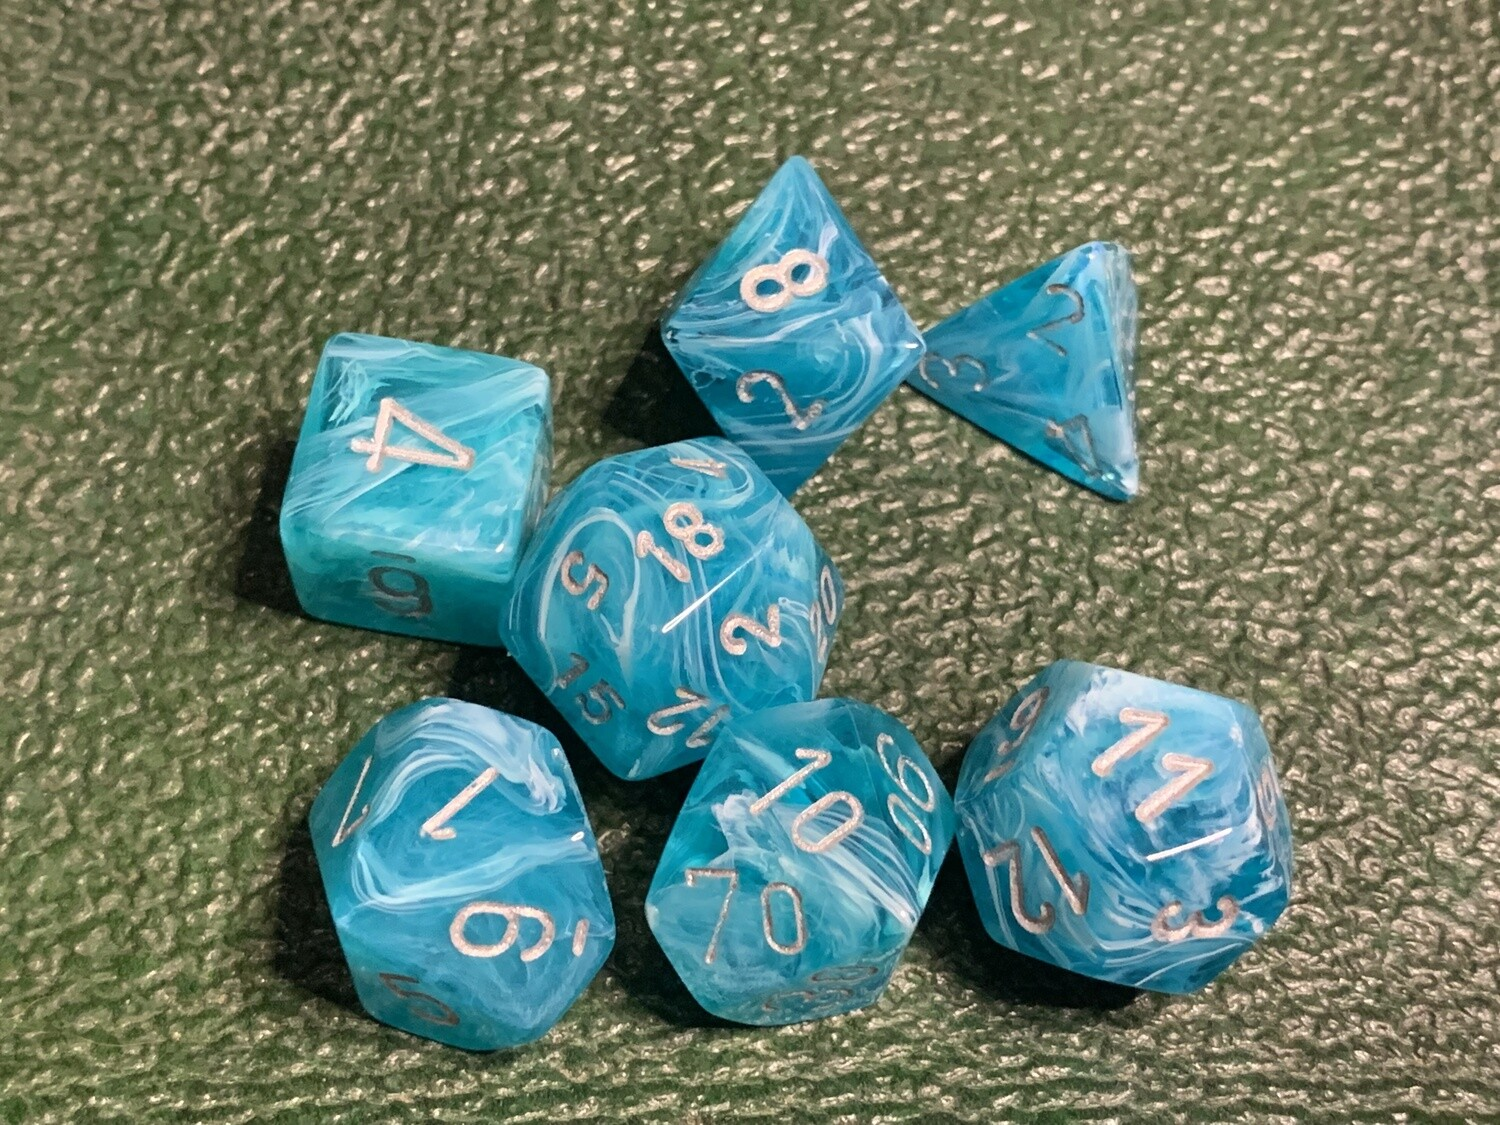 16mm 7 Die Polyhedral Dice Set - Cirrus Aqua with Silver